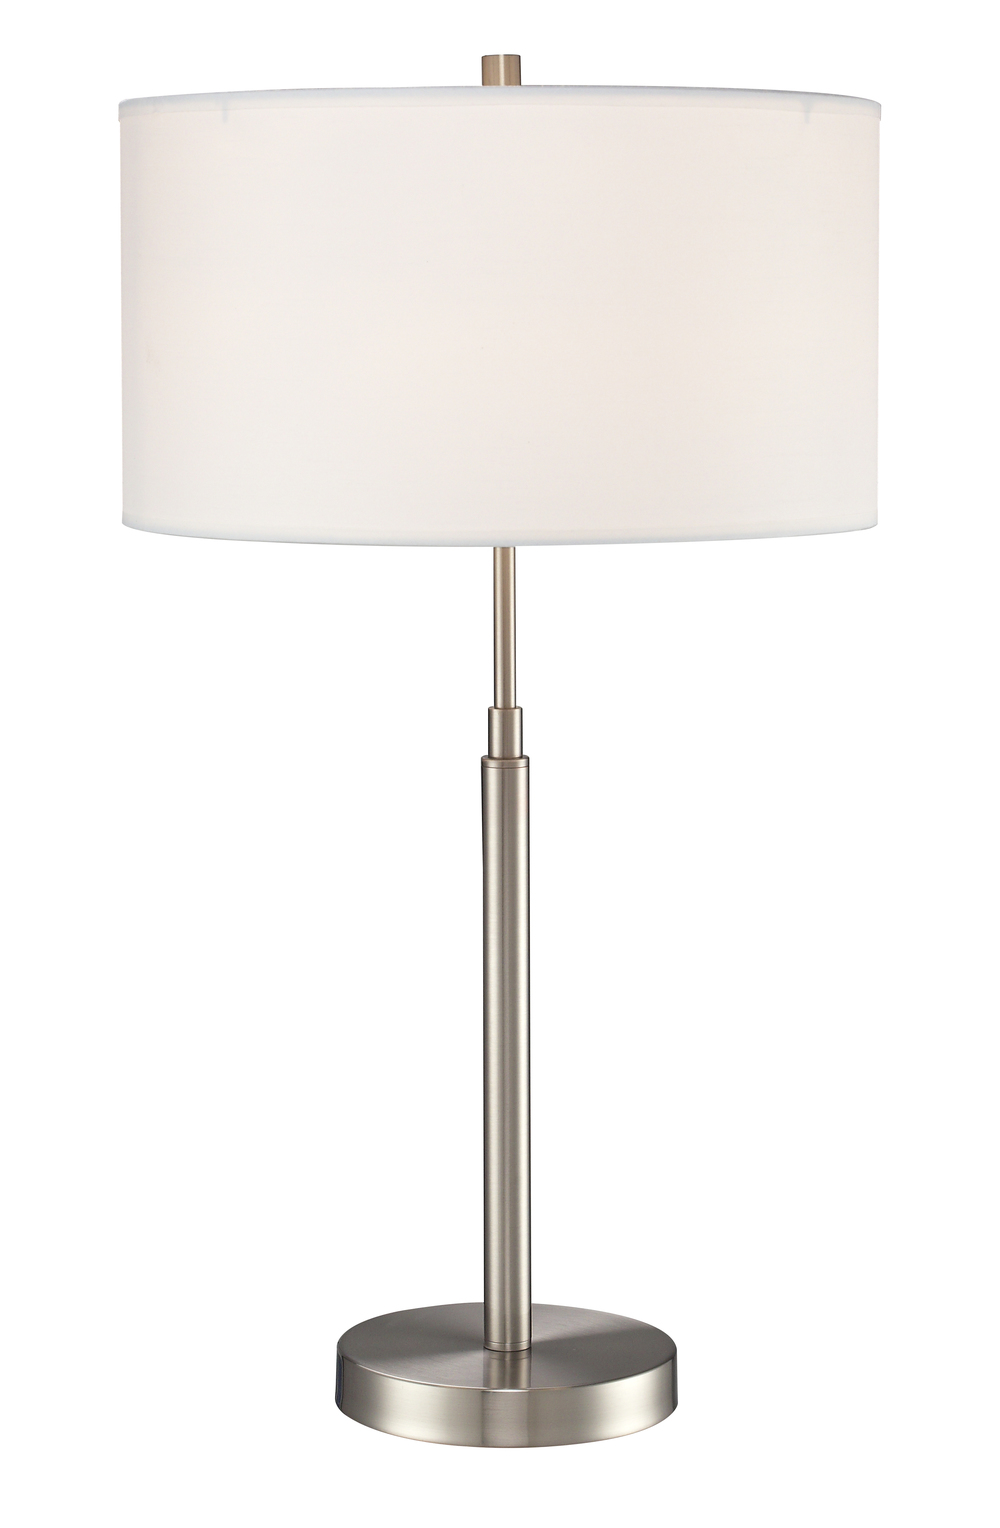 10020 | EMPIRE TABLE LAMP